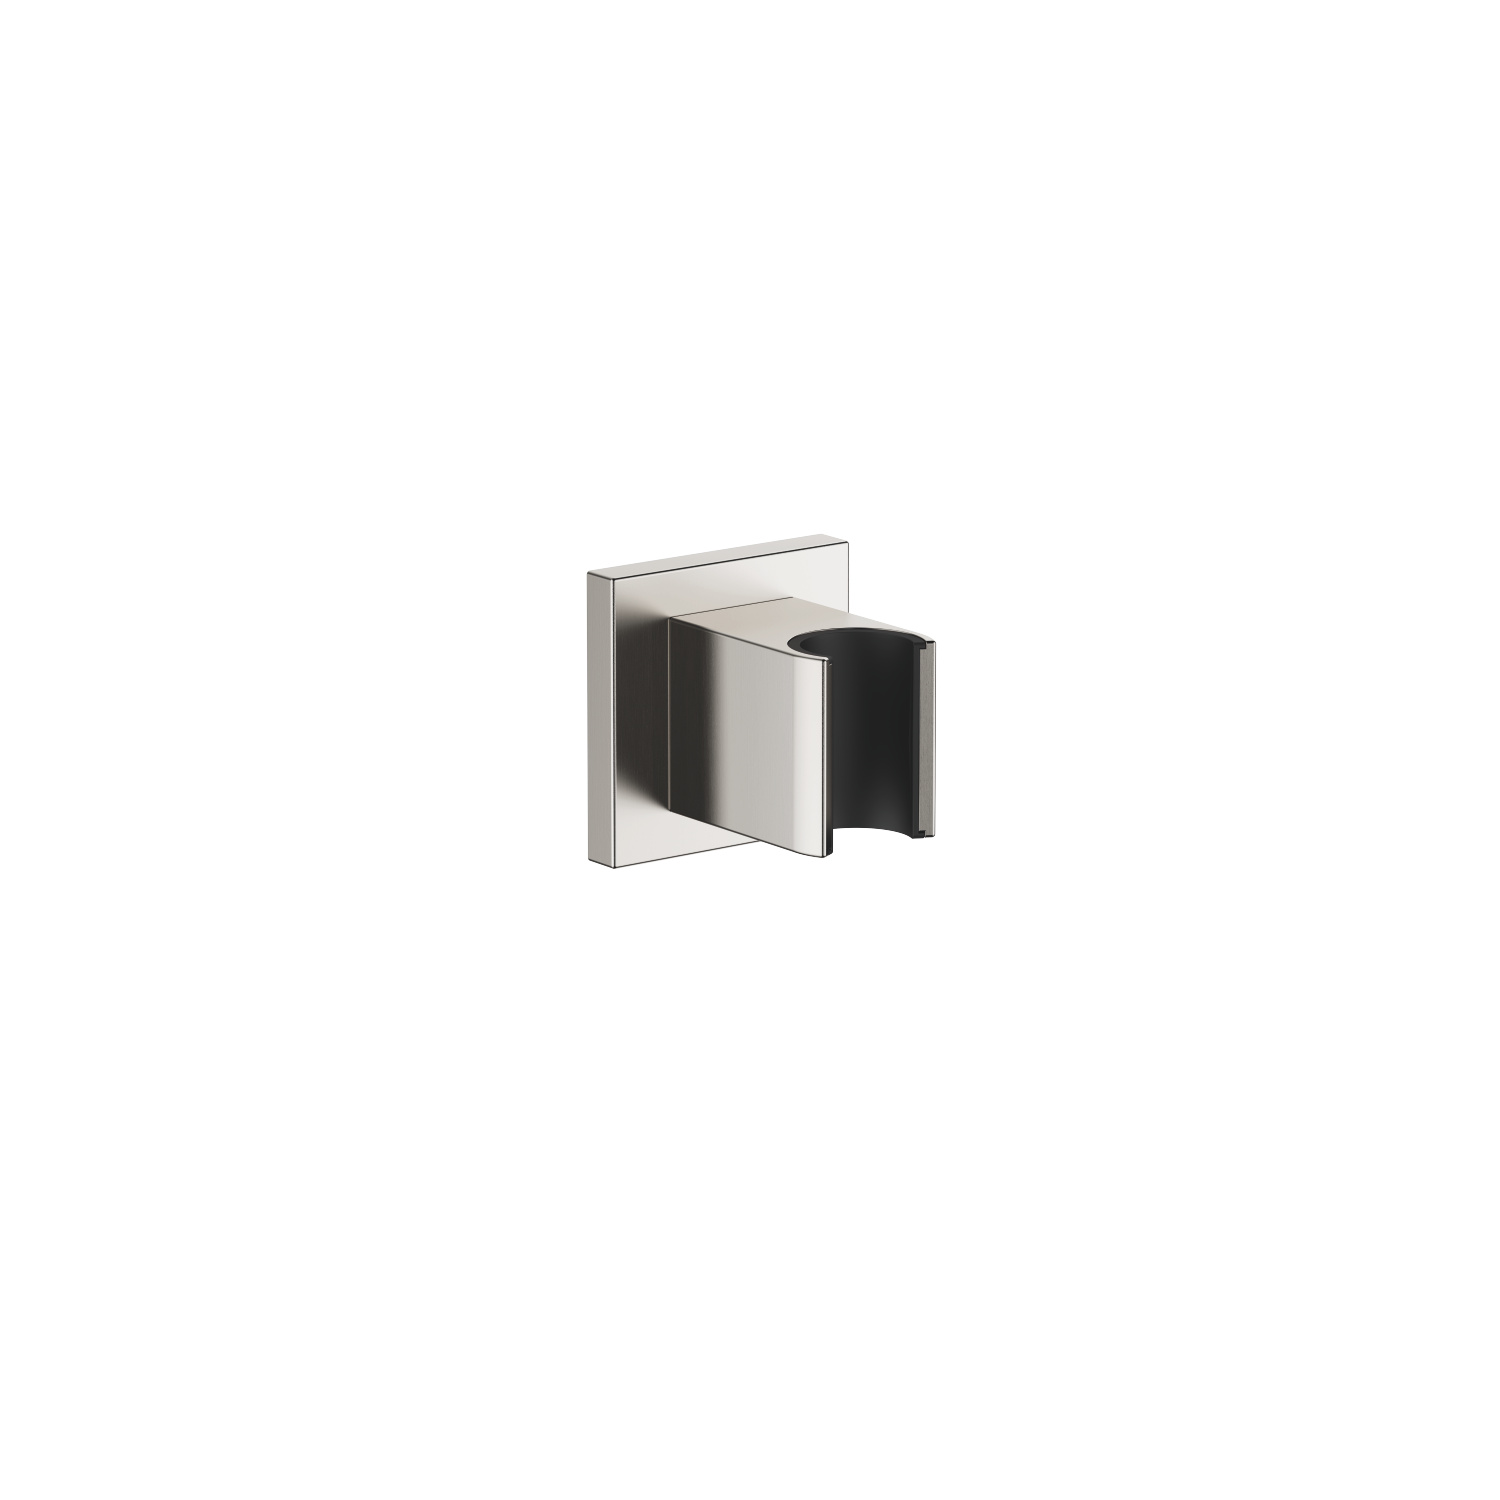 Wall bracket - platinum matt - 28 050 980-06